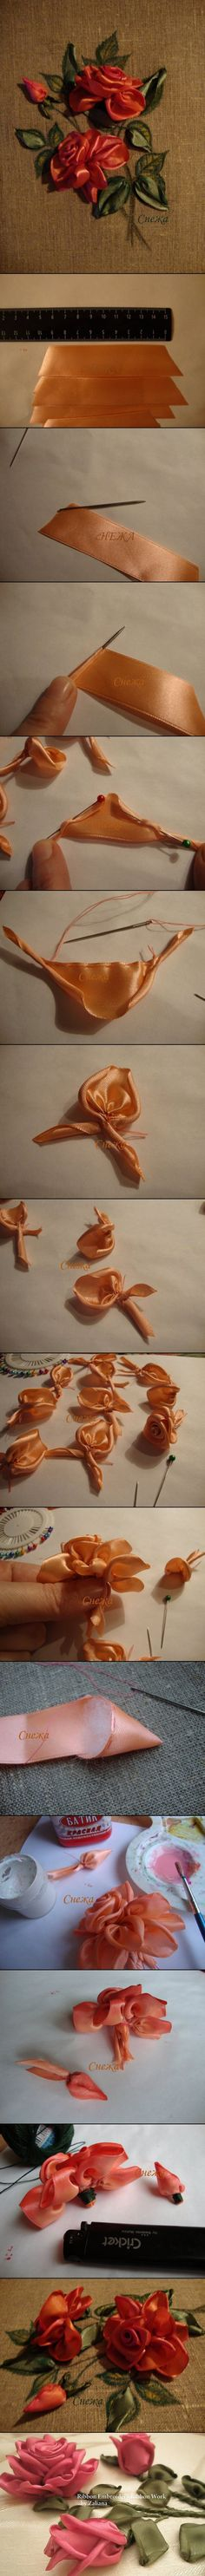 ribbon roses....all i can say is this is an AMAZING technique to create such a beautiful rose. WOW! i sure want to try it out!!...